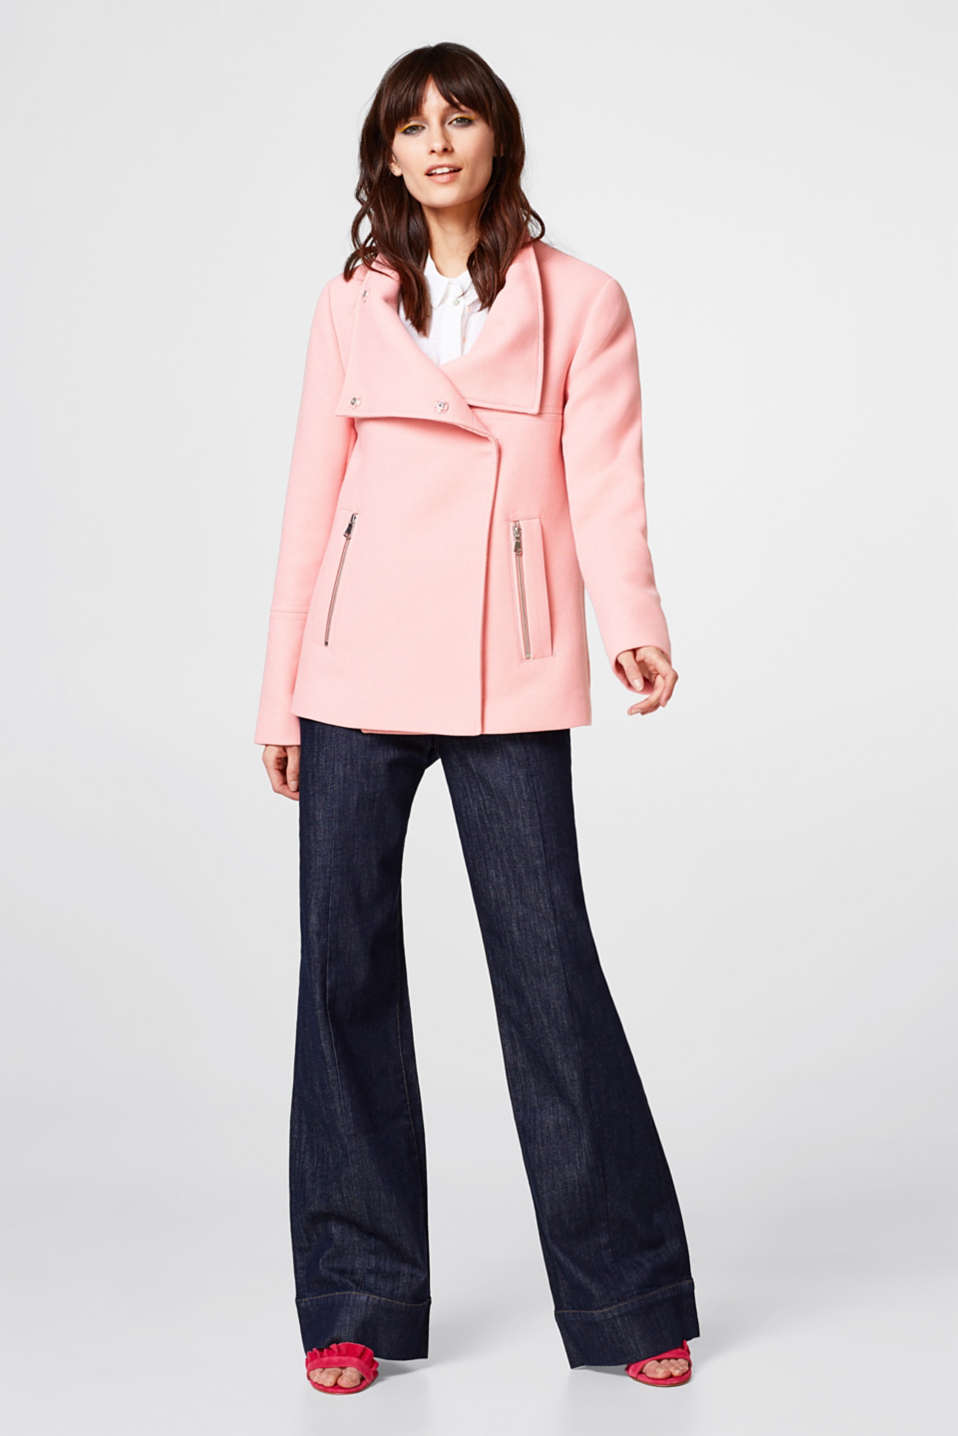 Short jacket with adjustable stand-up collar